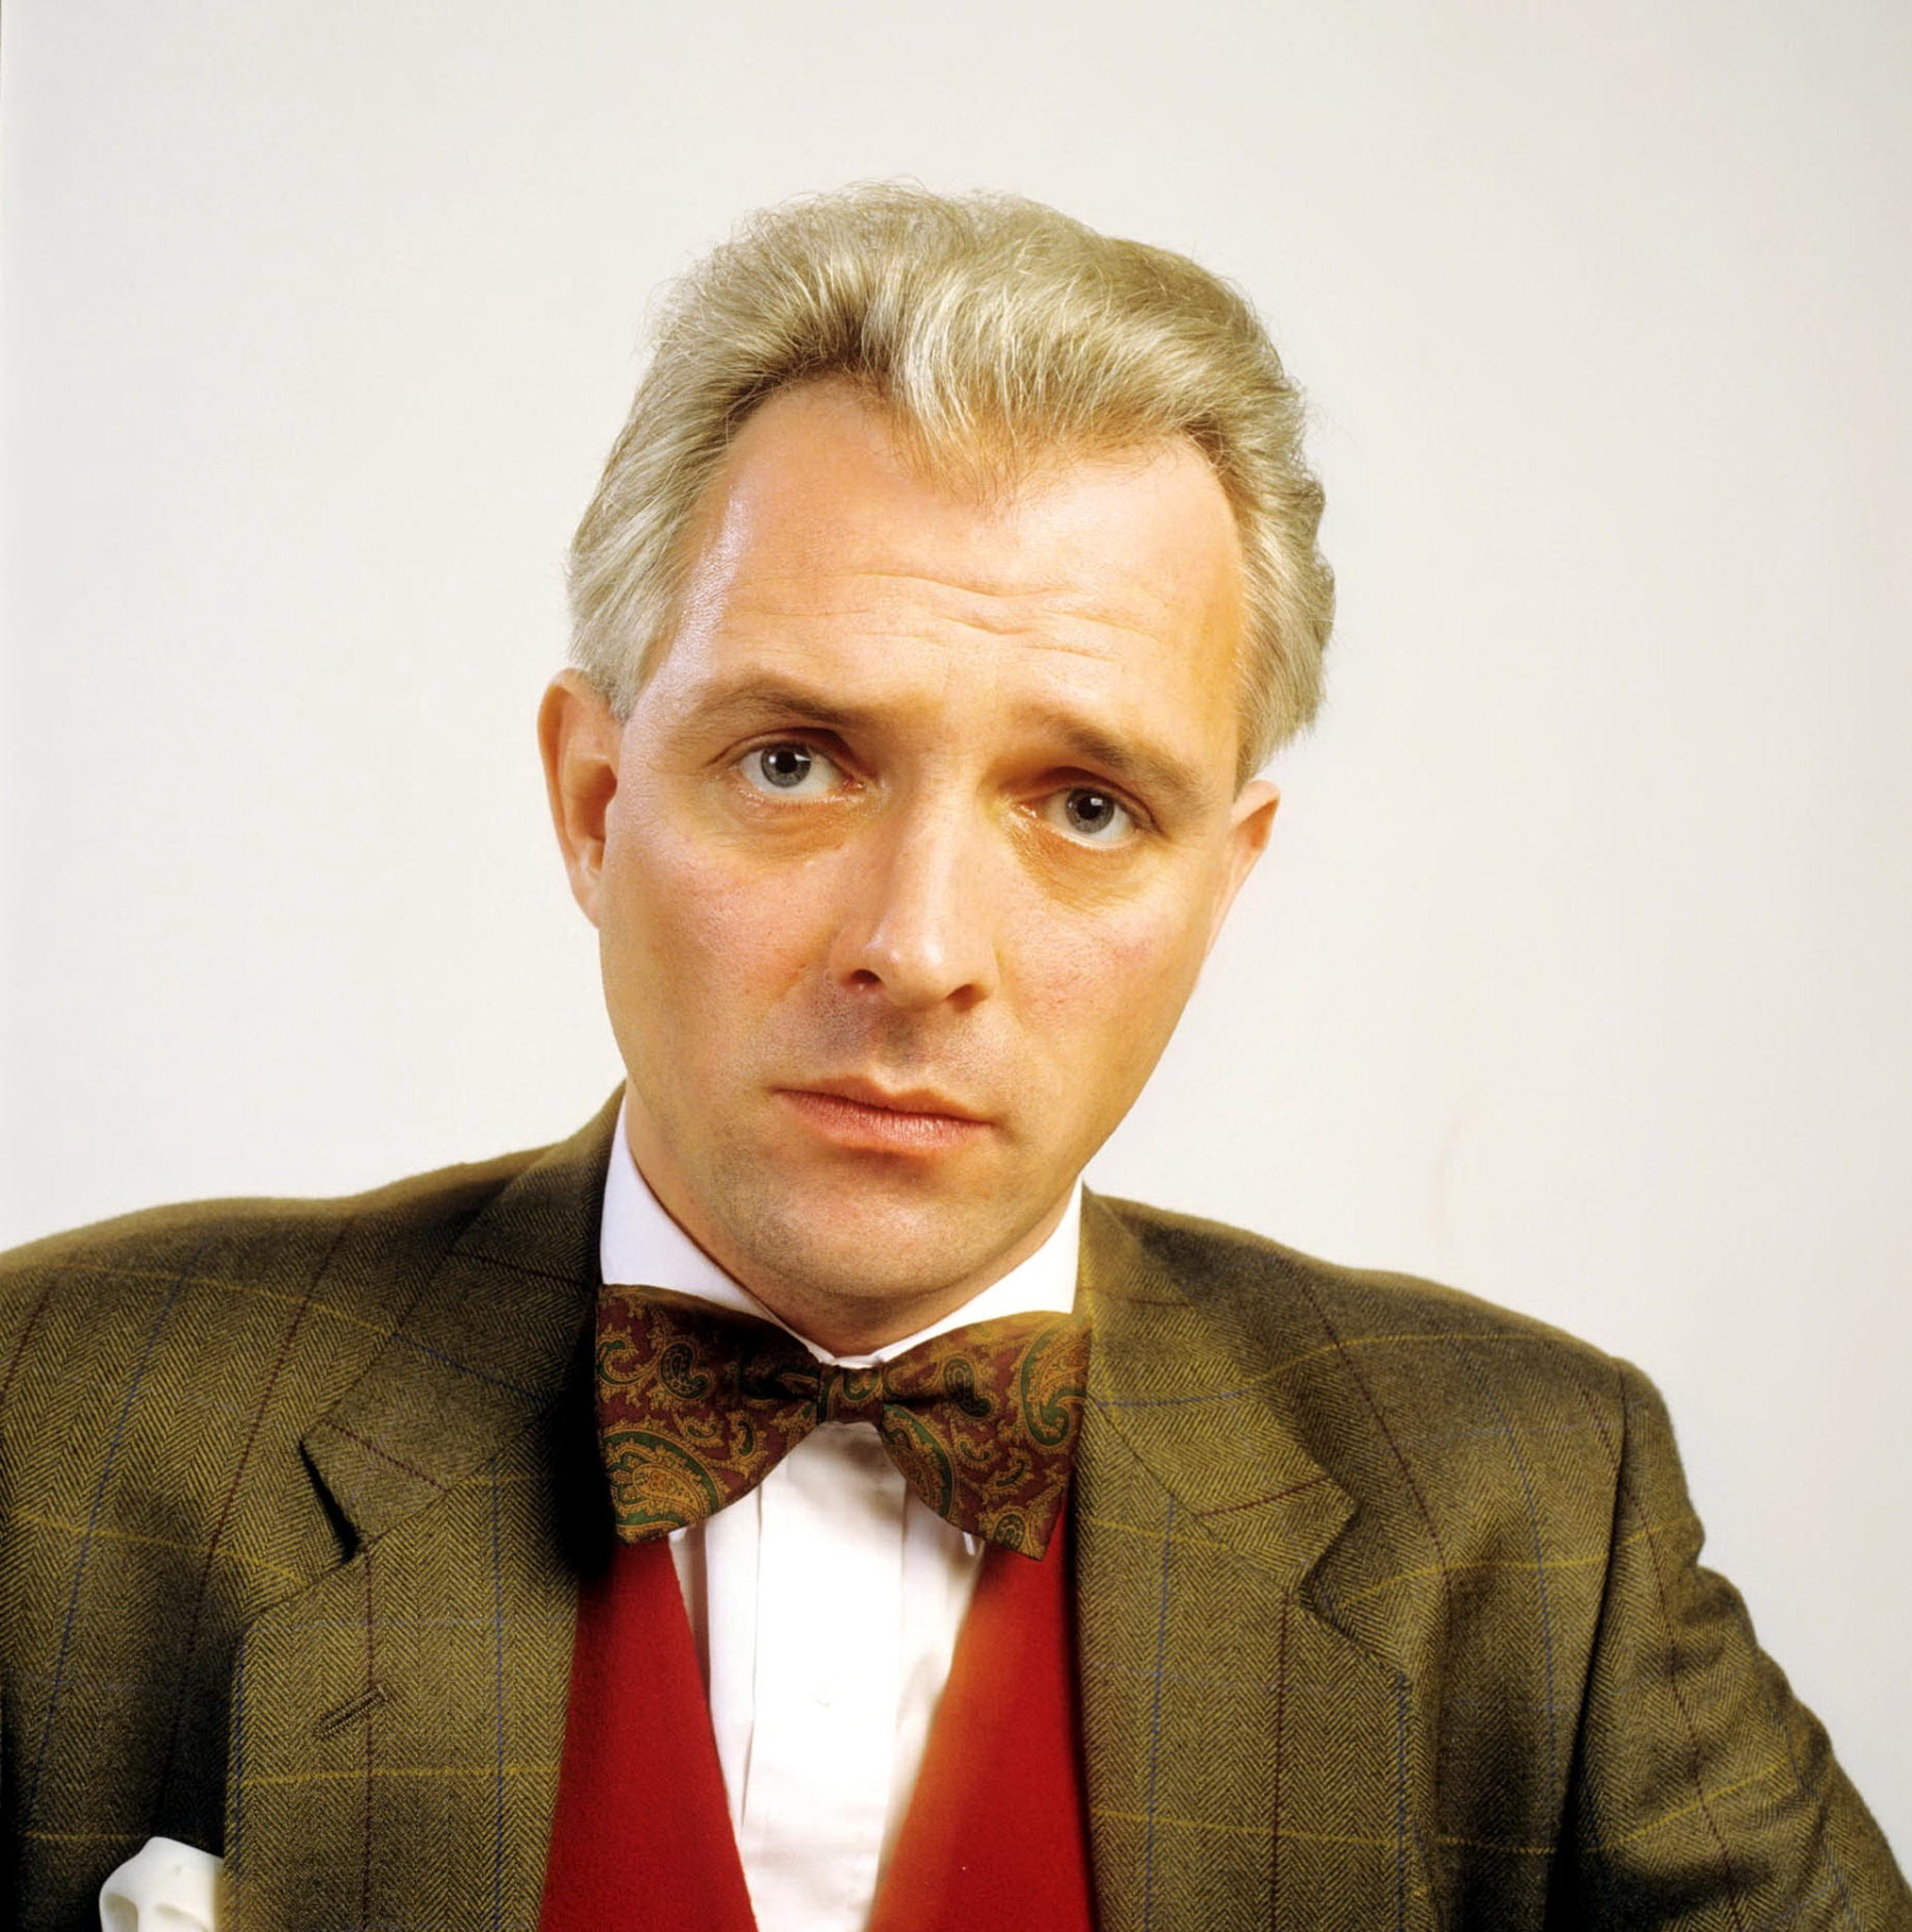 Rik Mayall dead: Late comedian's life in quotes, via Lord ...